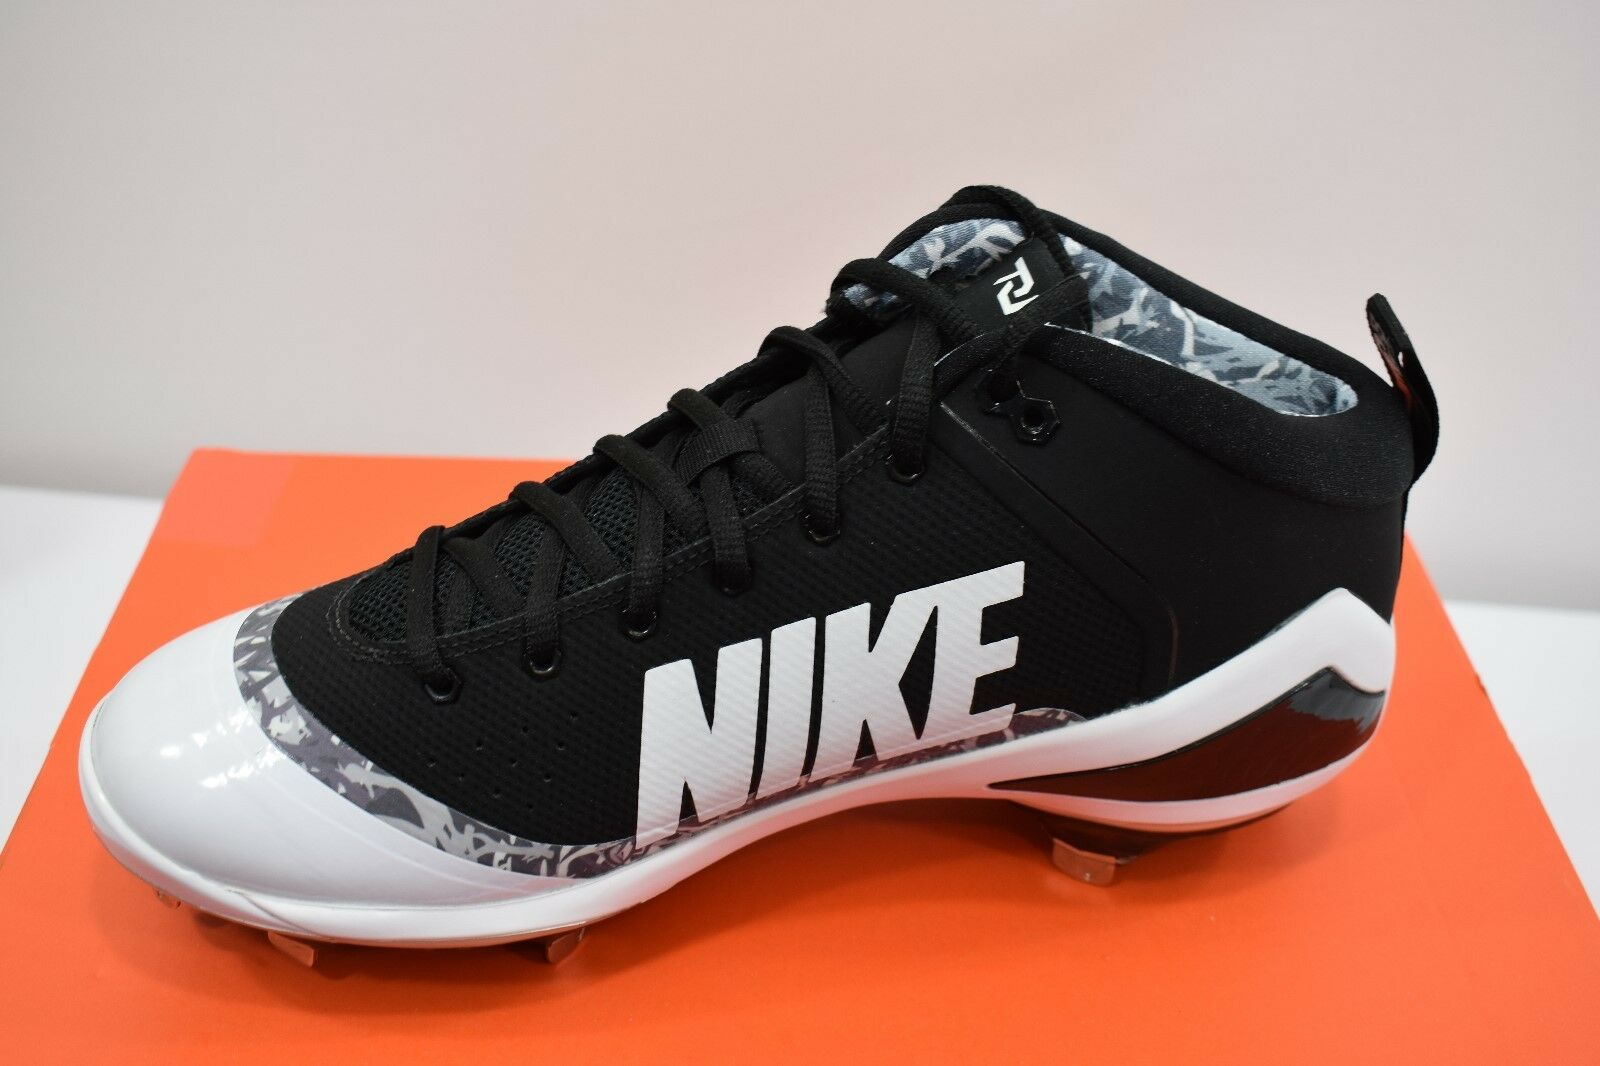 NIKE FORCE ZOOM TROUT 4 BASEBALL CLEATS SZ 10 NEW IN BOX